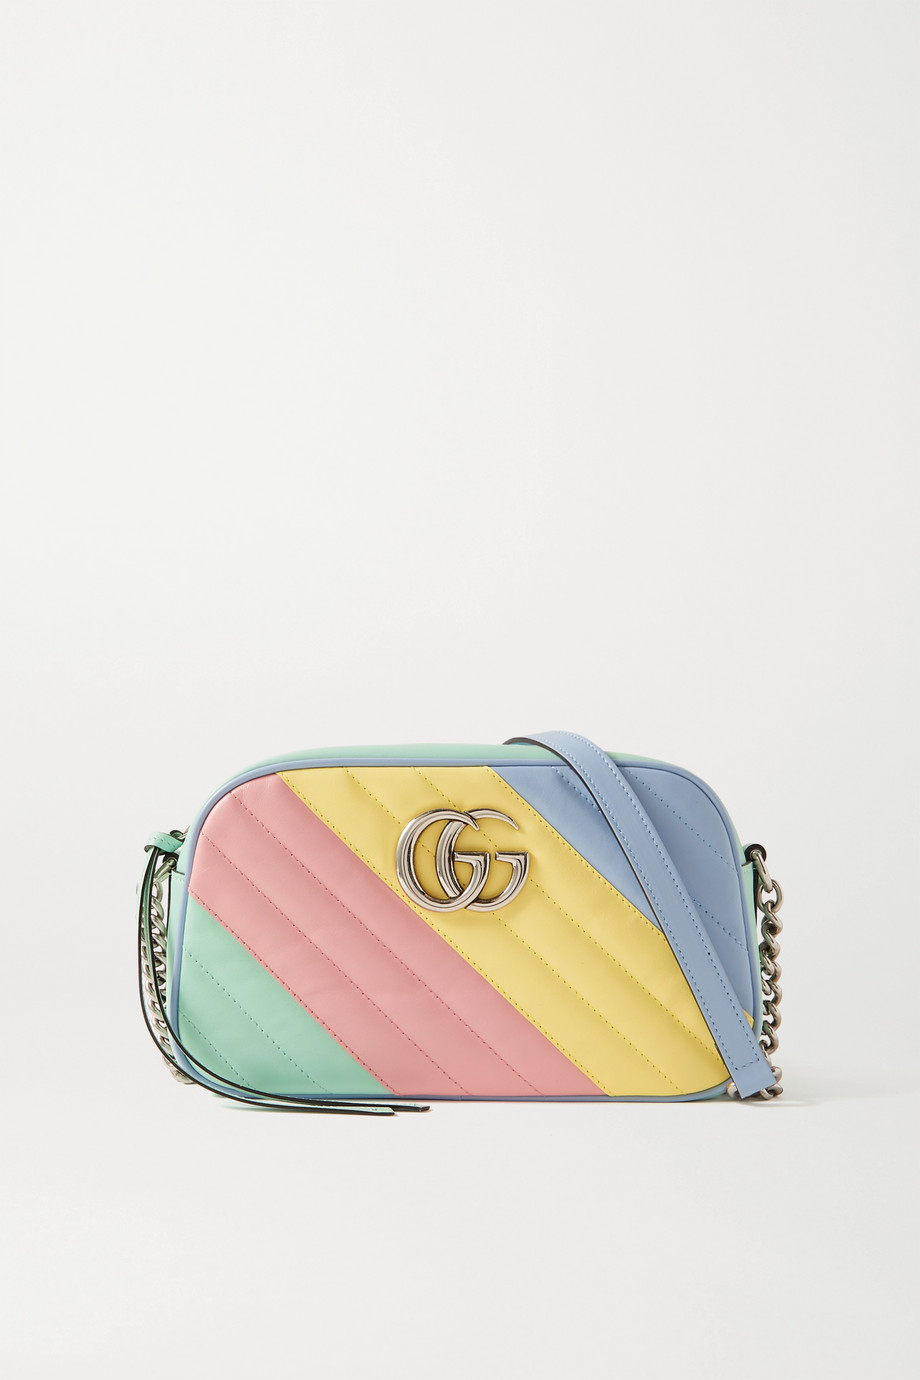 Gucci GG Marmont Camera color-block quilted leather shoulder bag